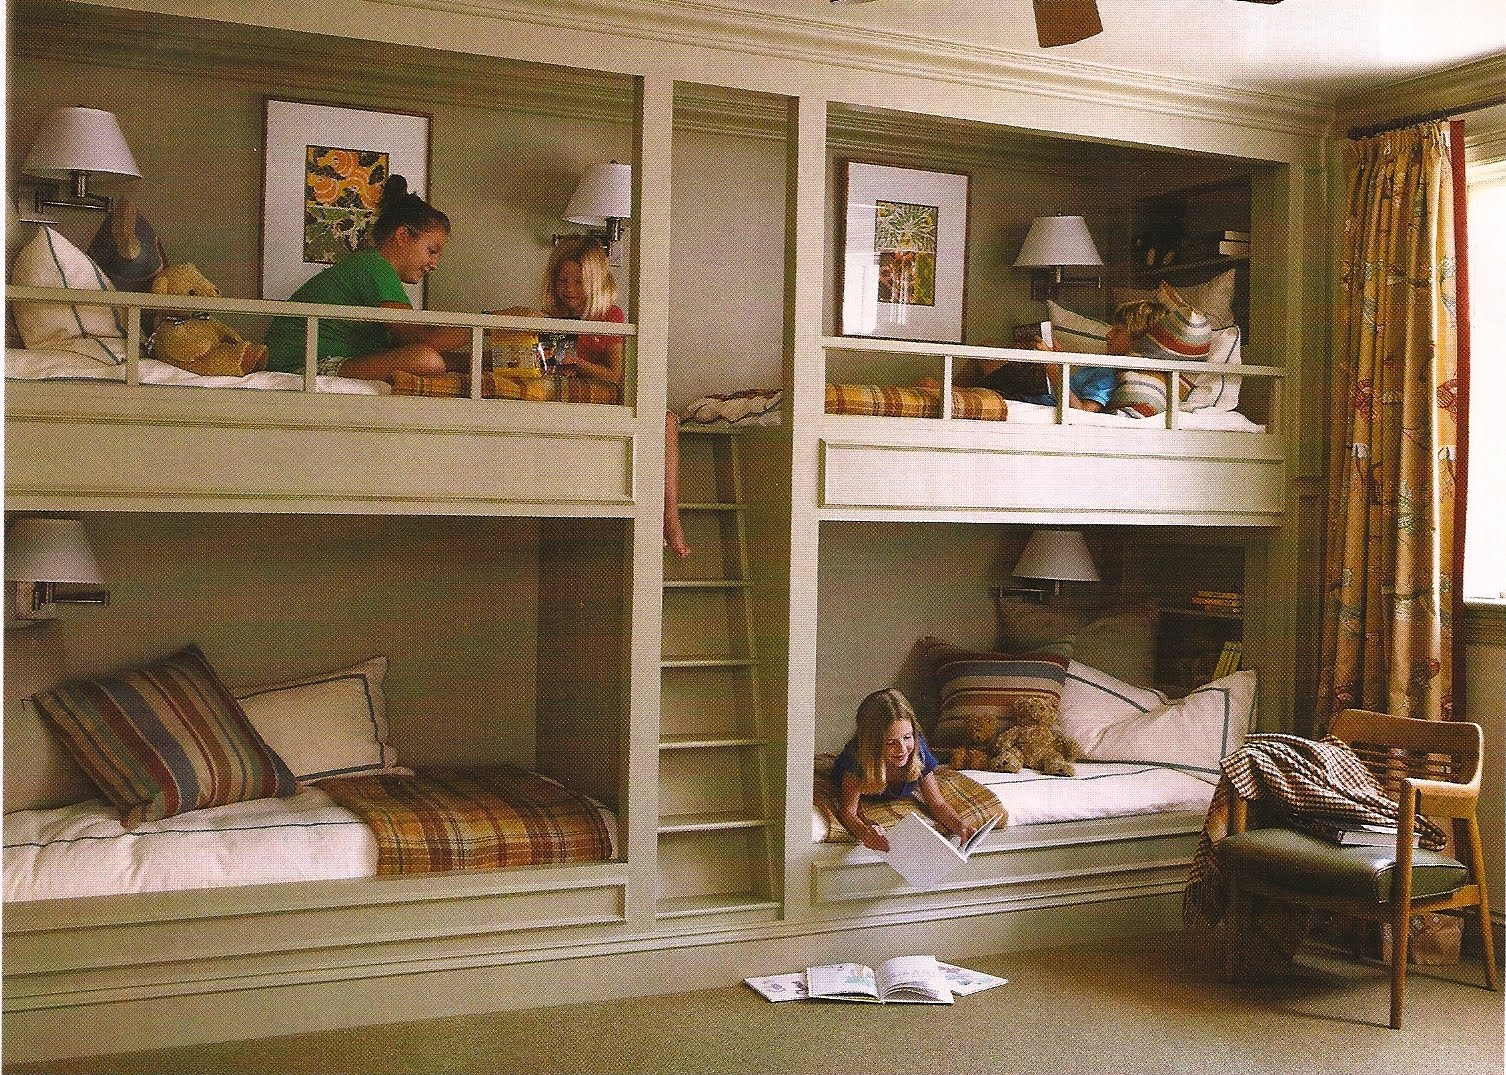 ... bunk beds, or handcrafted sleigh beds , with tons of built-in storage